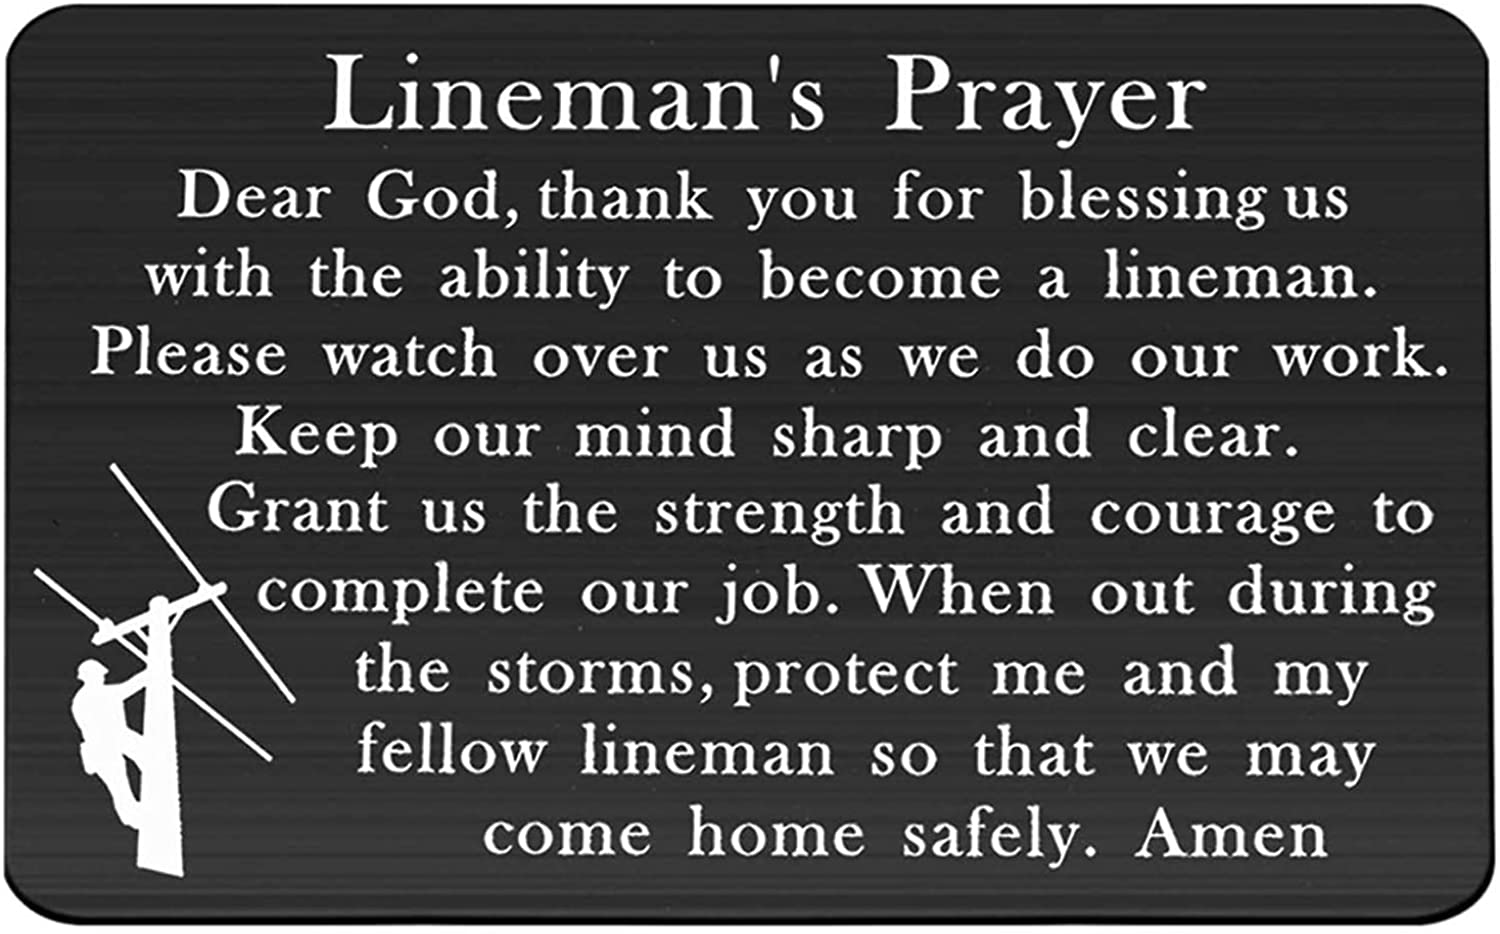 Gzrlyf Lineman Prayer Wallet Card Insert Lineman Gifts for Him Husband Gifts Father Uncle